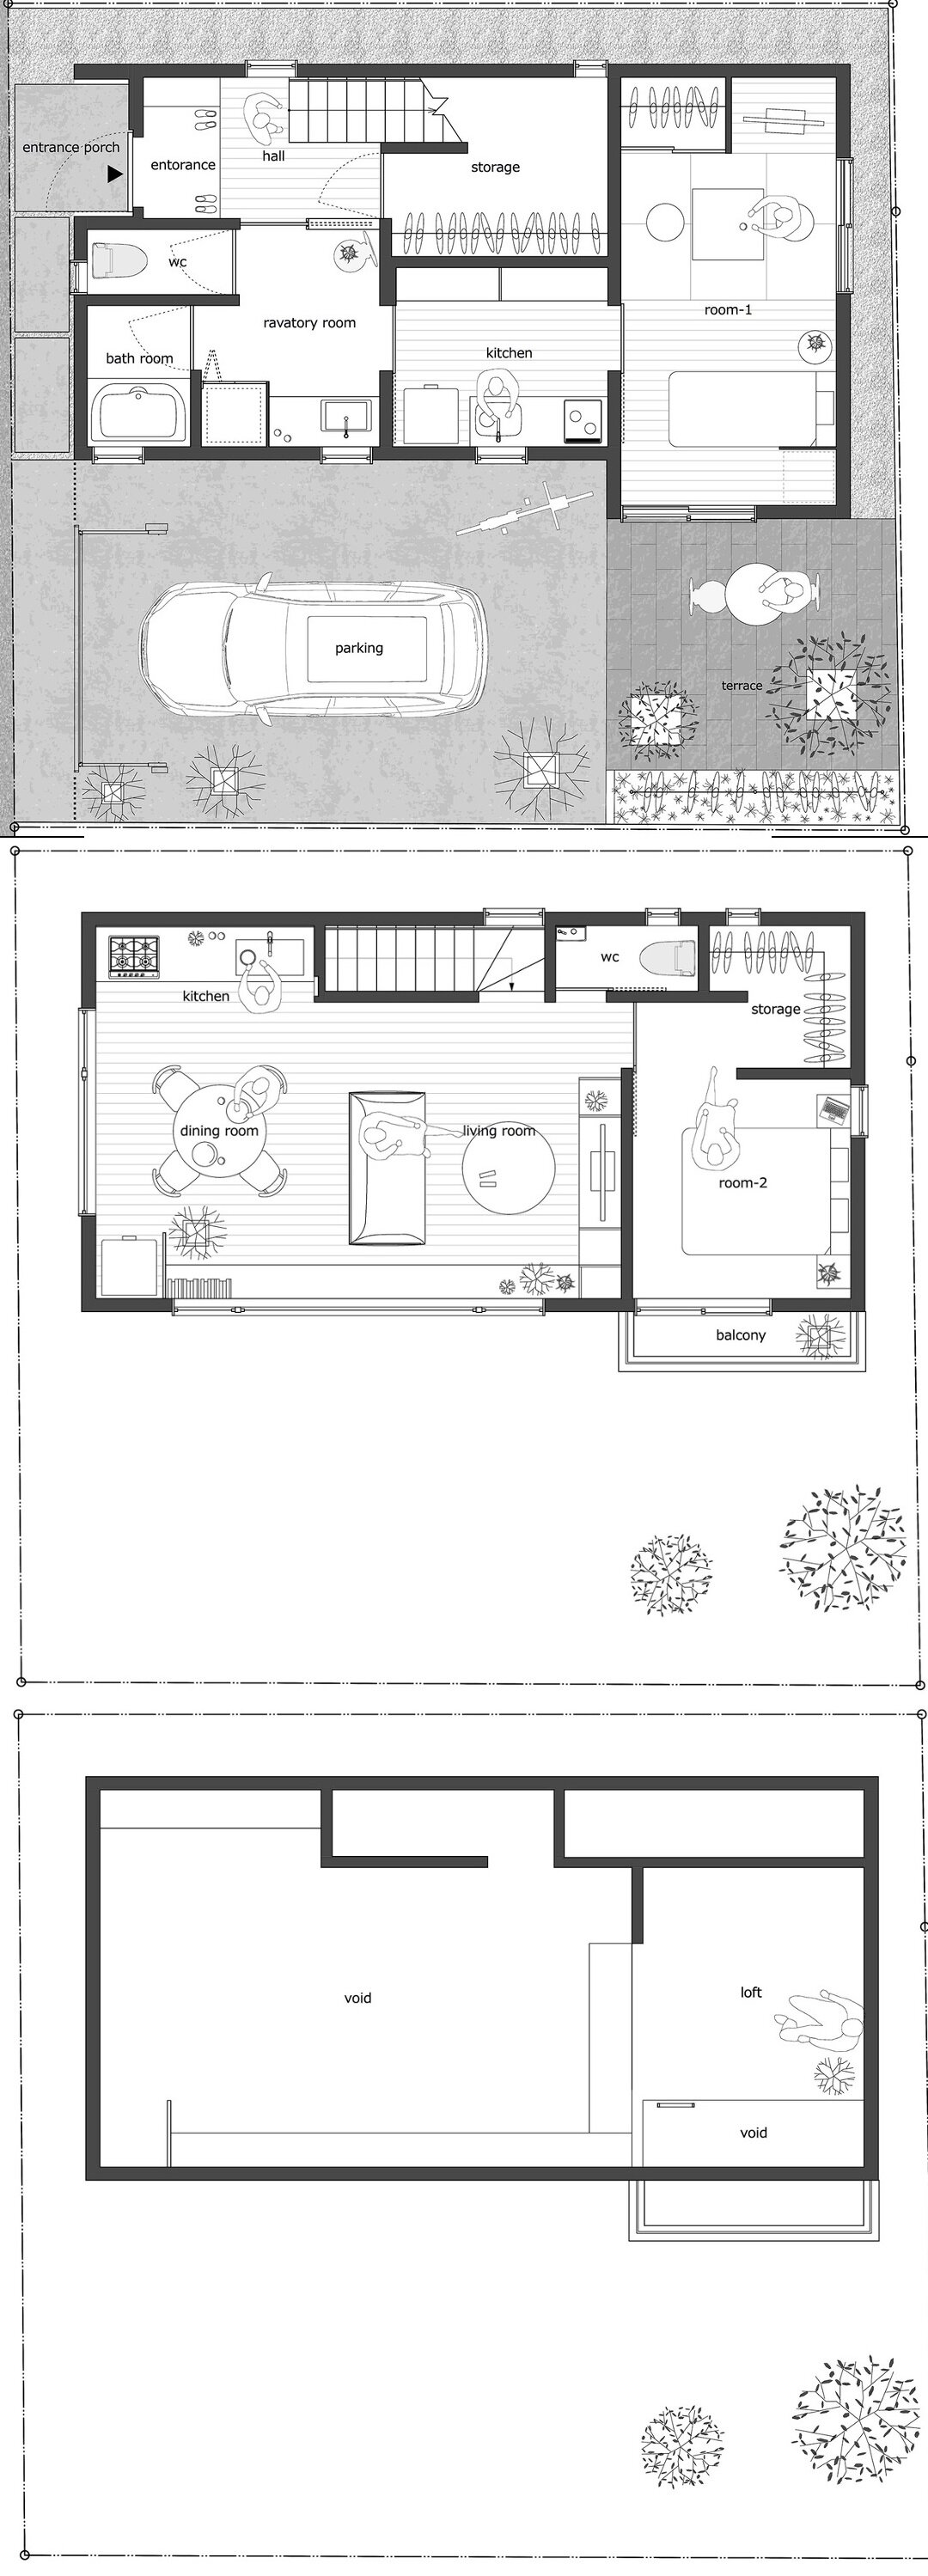 Japanese small house design plans escortsea for Japanese house floor plan design